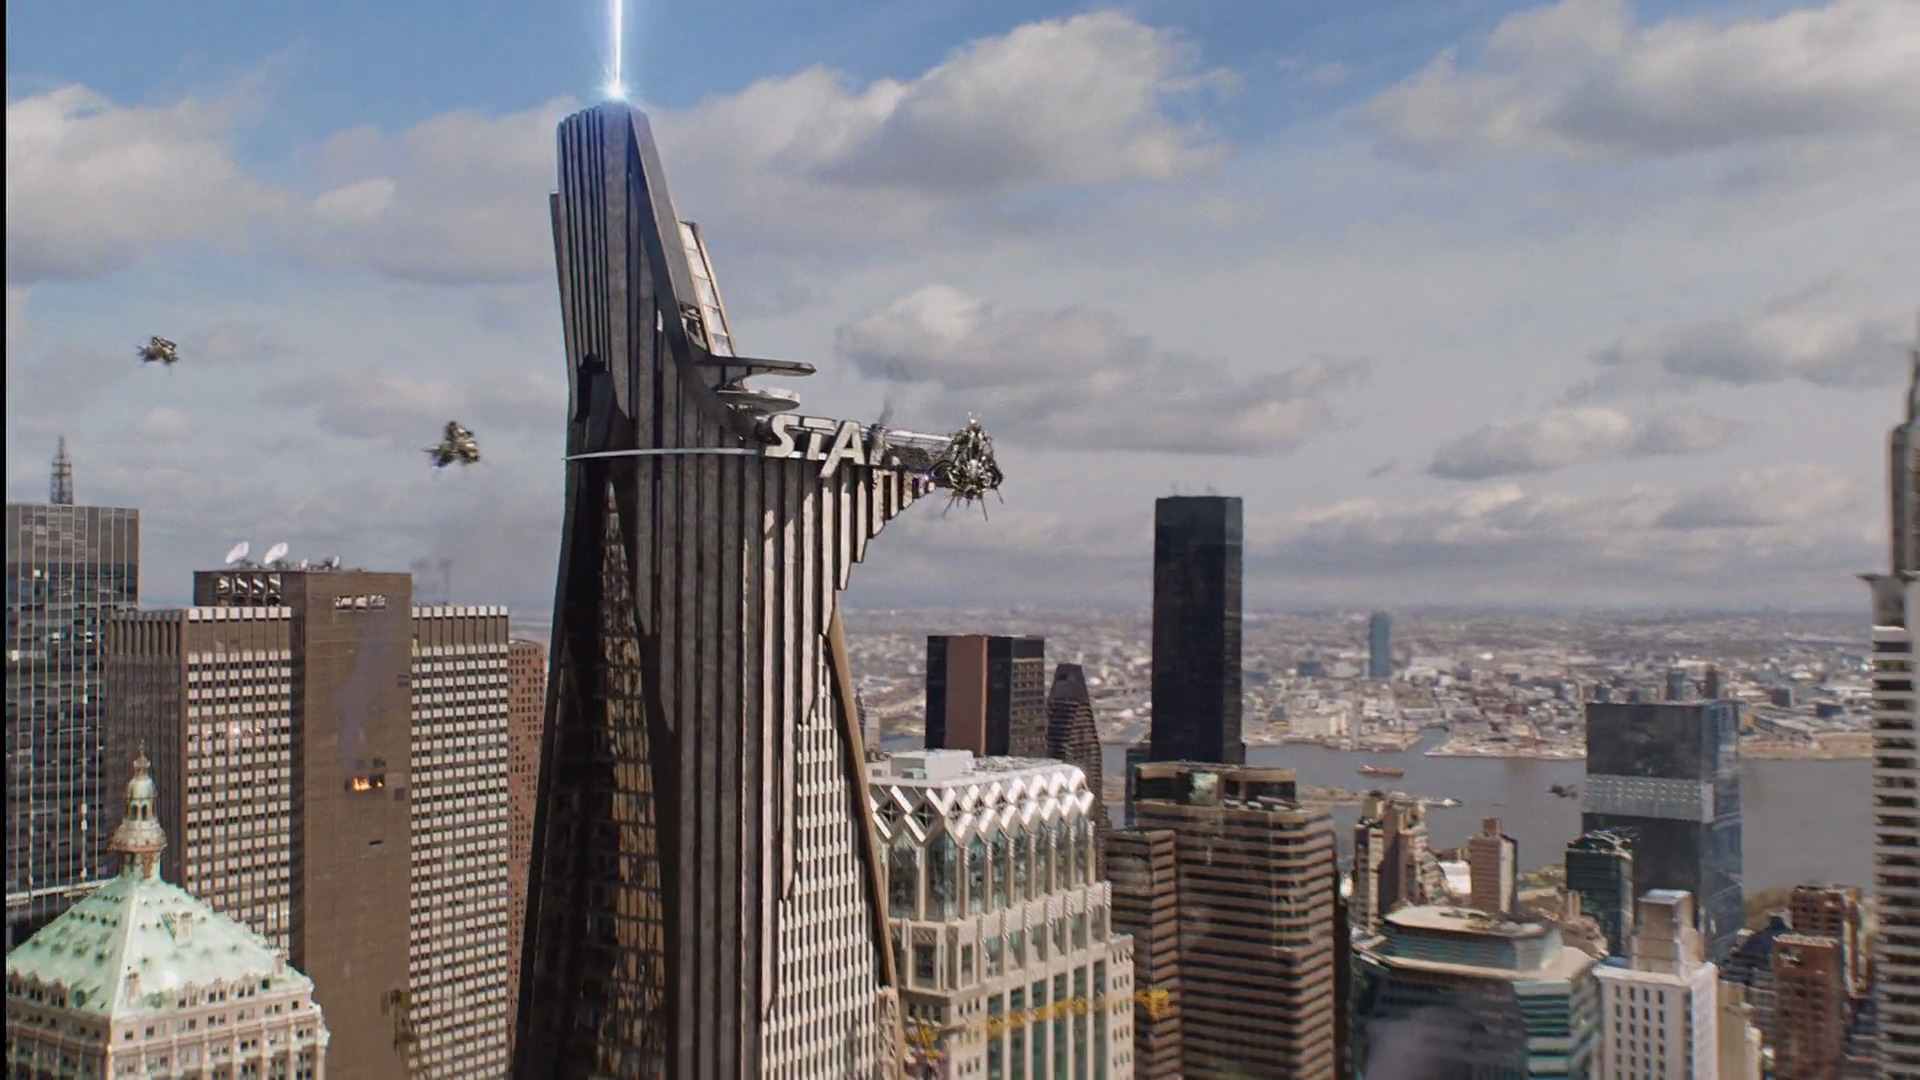 A Portal To The Sanctuary Was Finally Opened And First Waves Of Chitauri Began Arriving On Earth Above Stark Tower